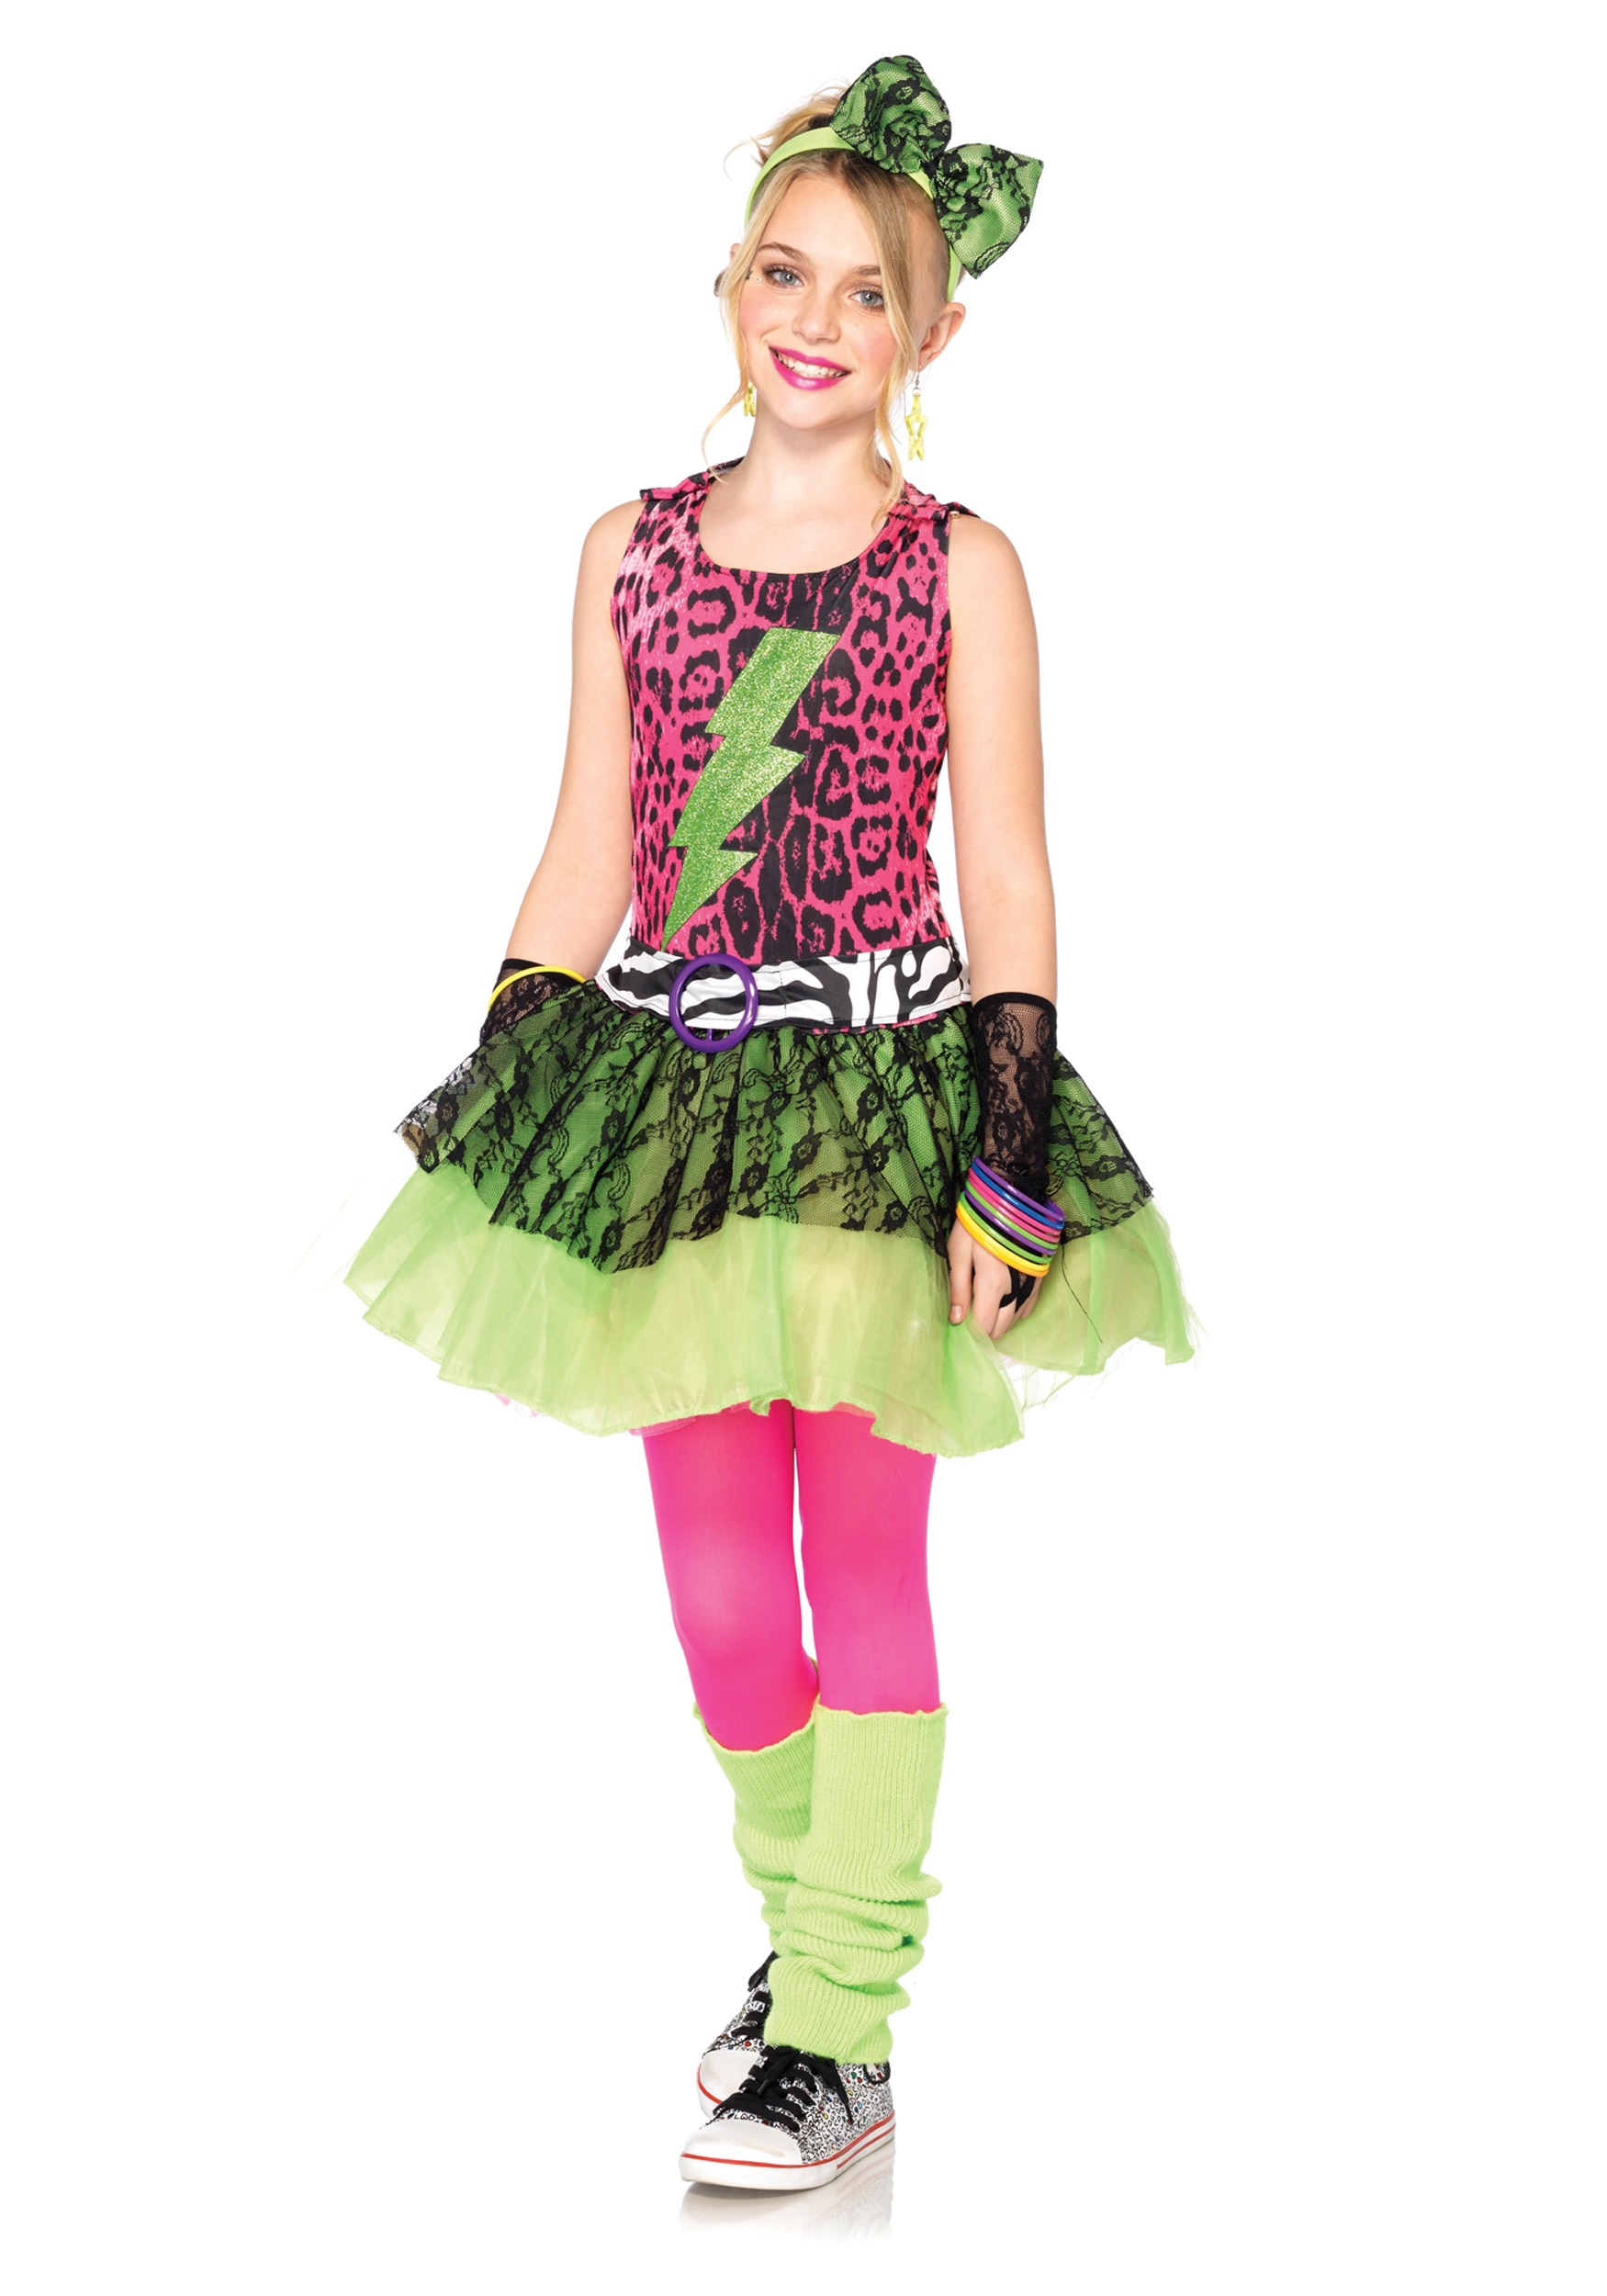 a48c0ebeb10f7 Child Totally 80s Amy Costume Sc 1 St Halloween Costumes. image number 10  of burlesque baby costume ...